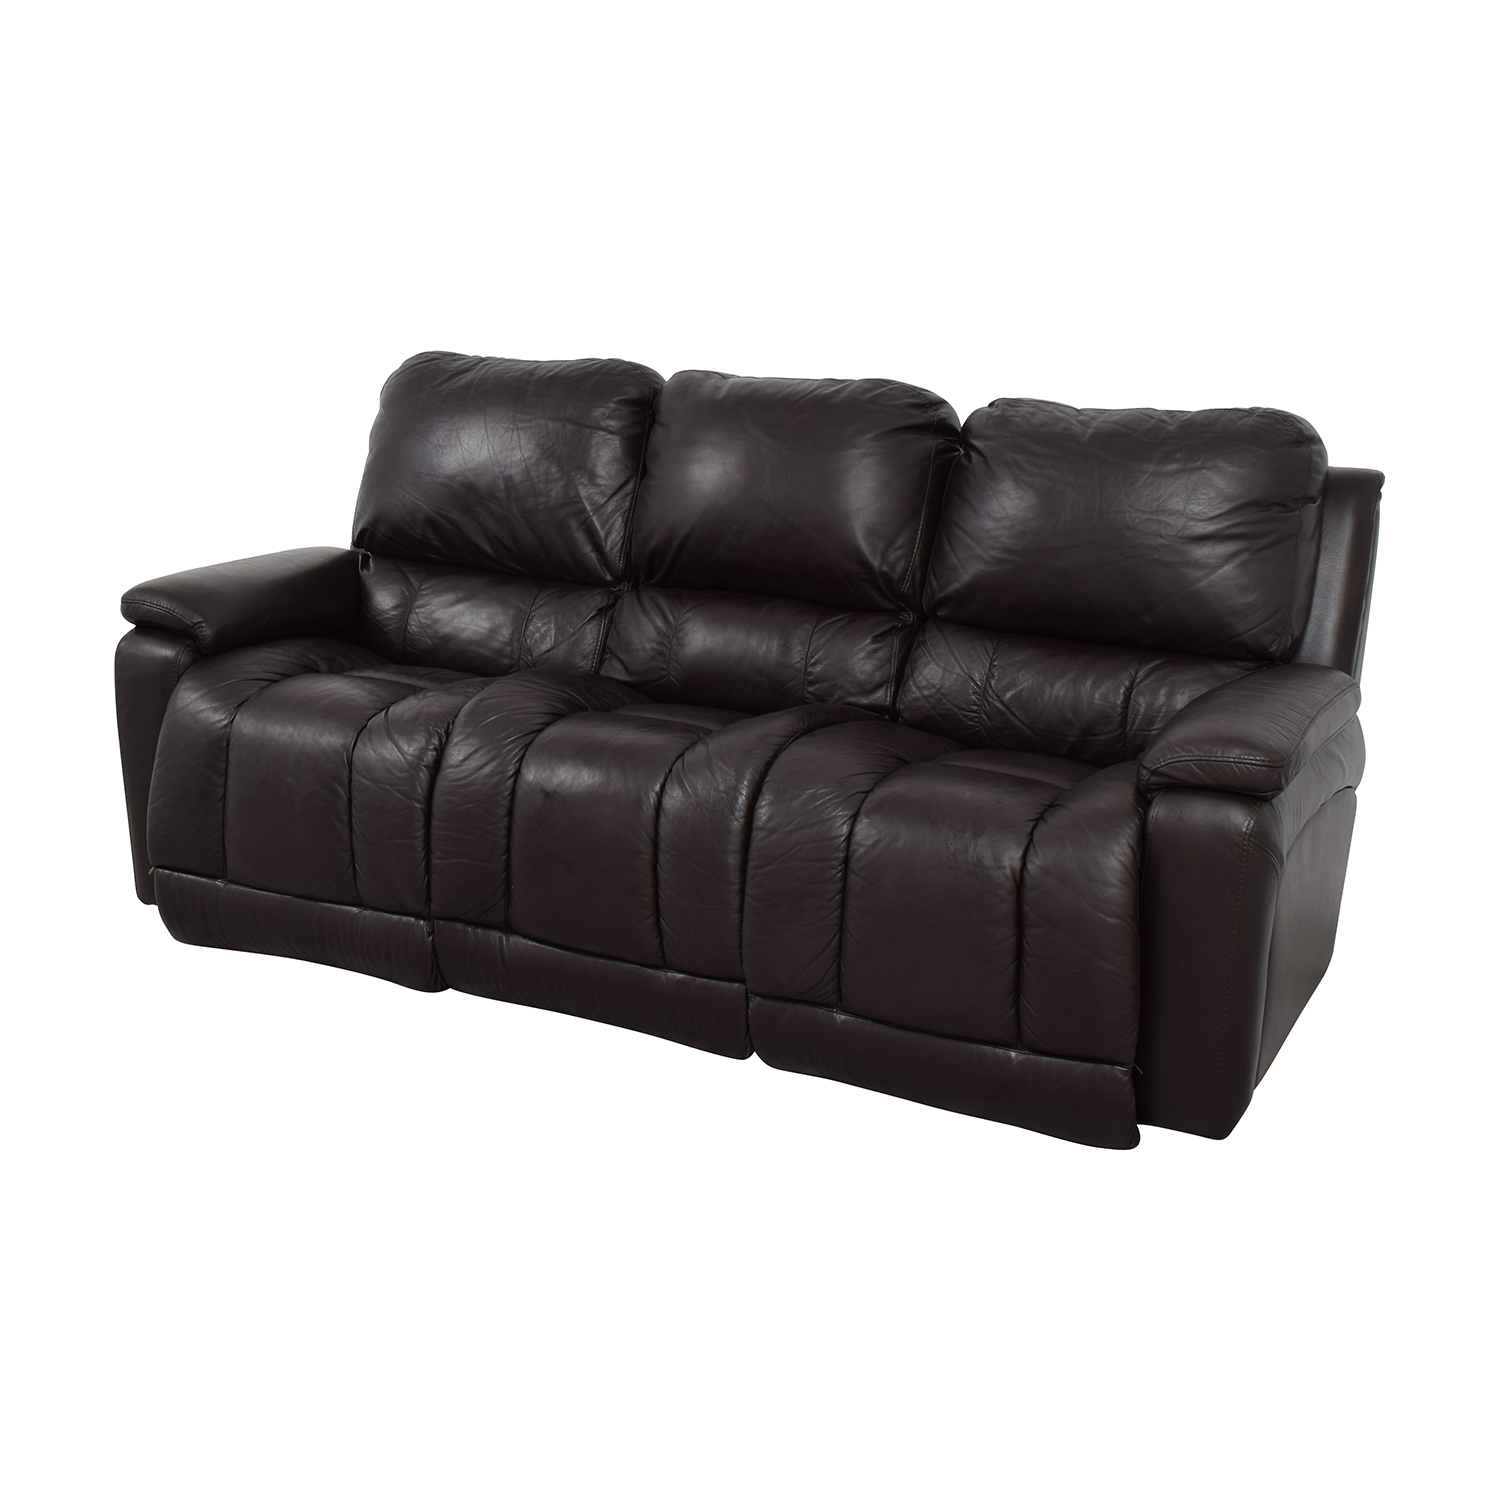 77 off la z boy la z boy brown leather reclining sofa sofas